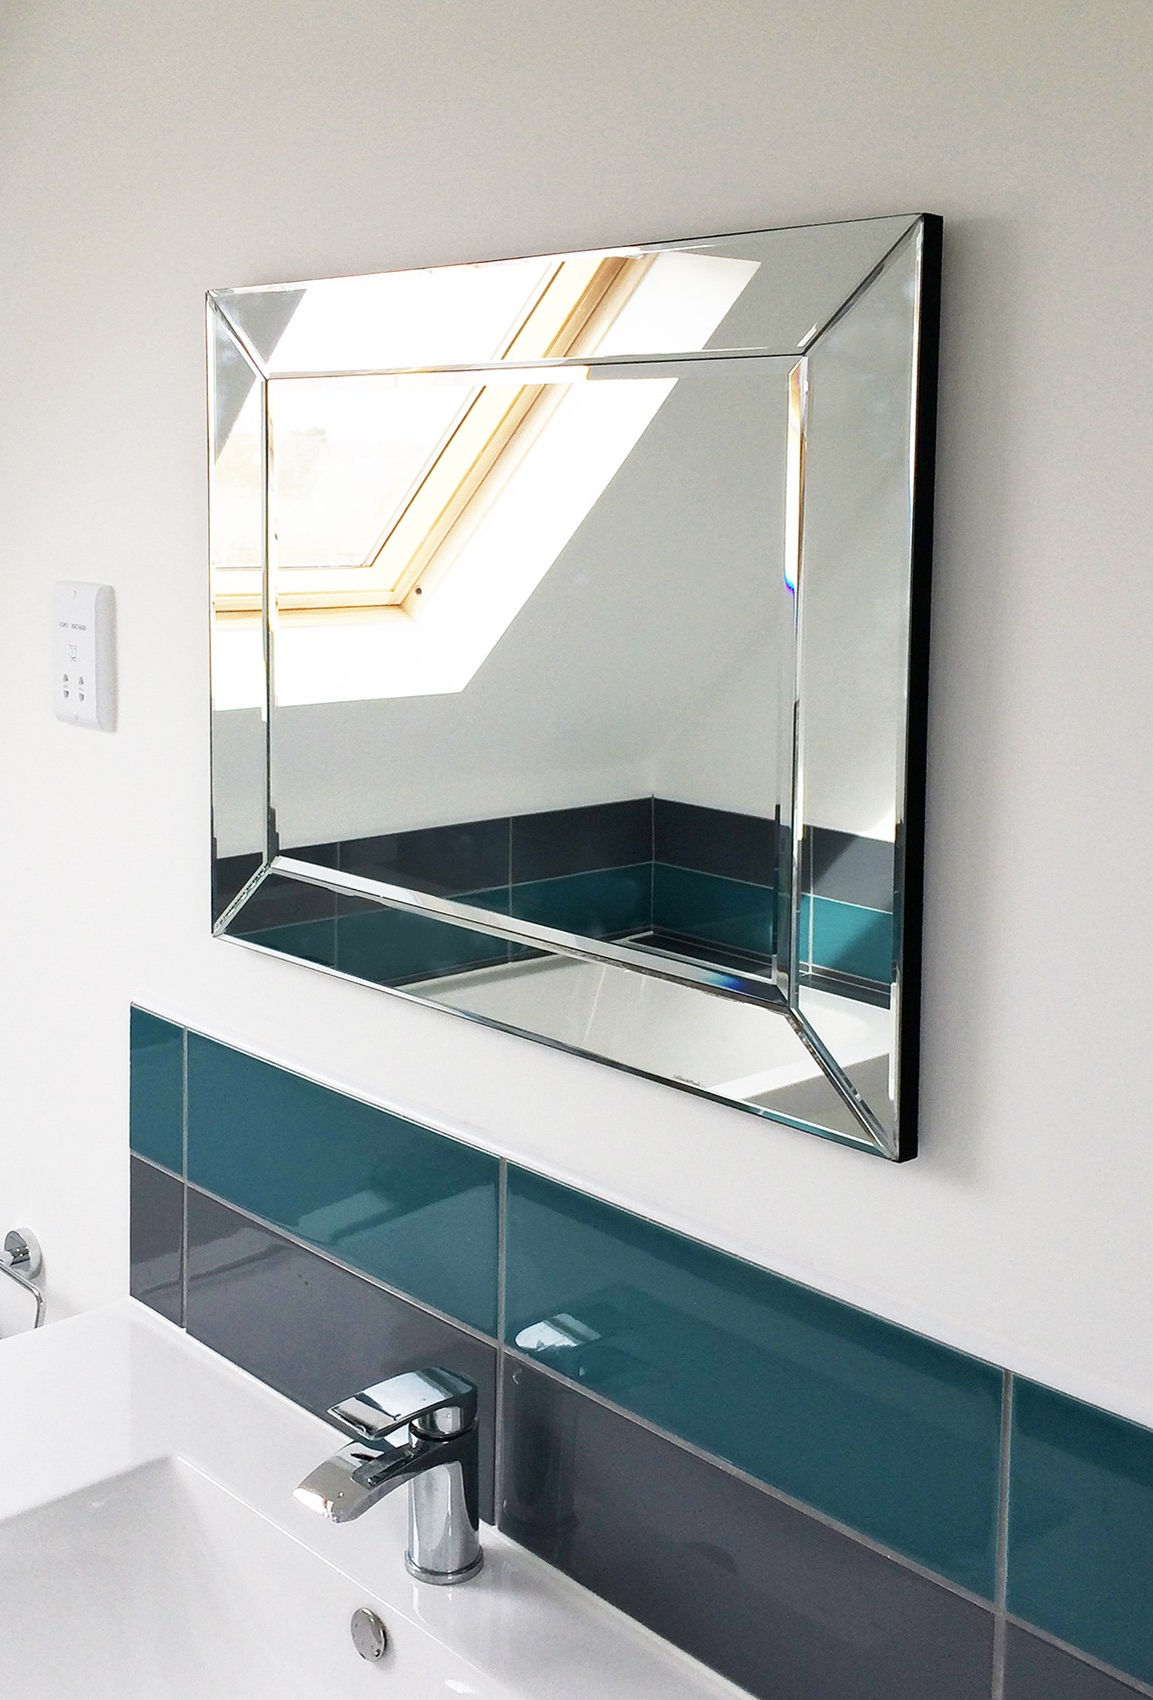 Most Recently Released Large Glass Bevelled Wall Mirrors With Regard To Newton Contemporary Frameless Mirror (6 Sizes) (View 12 of 20)